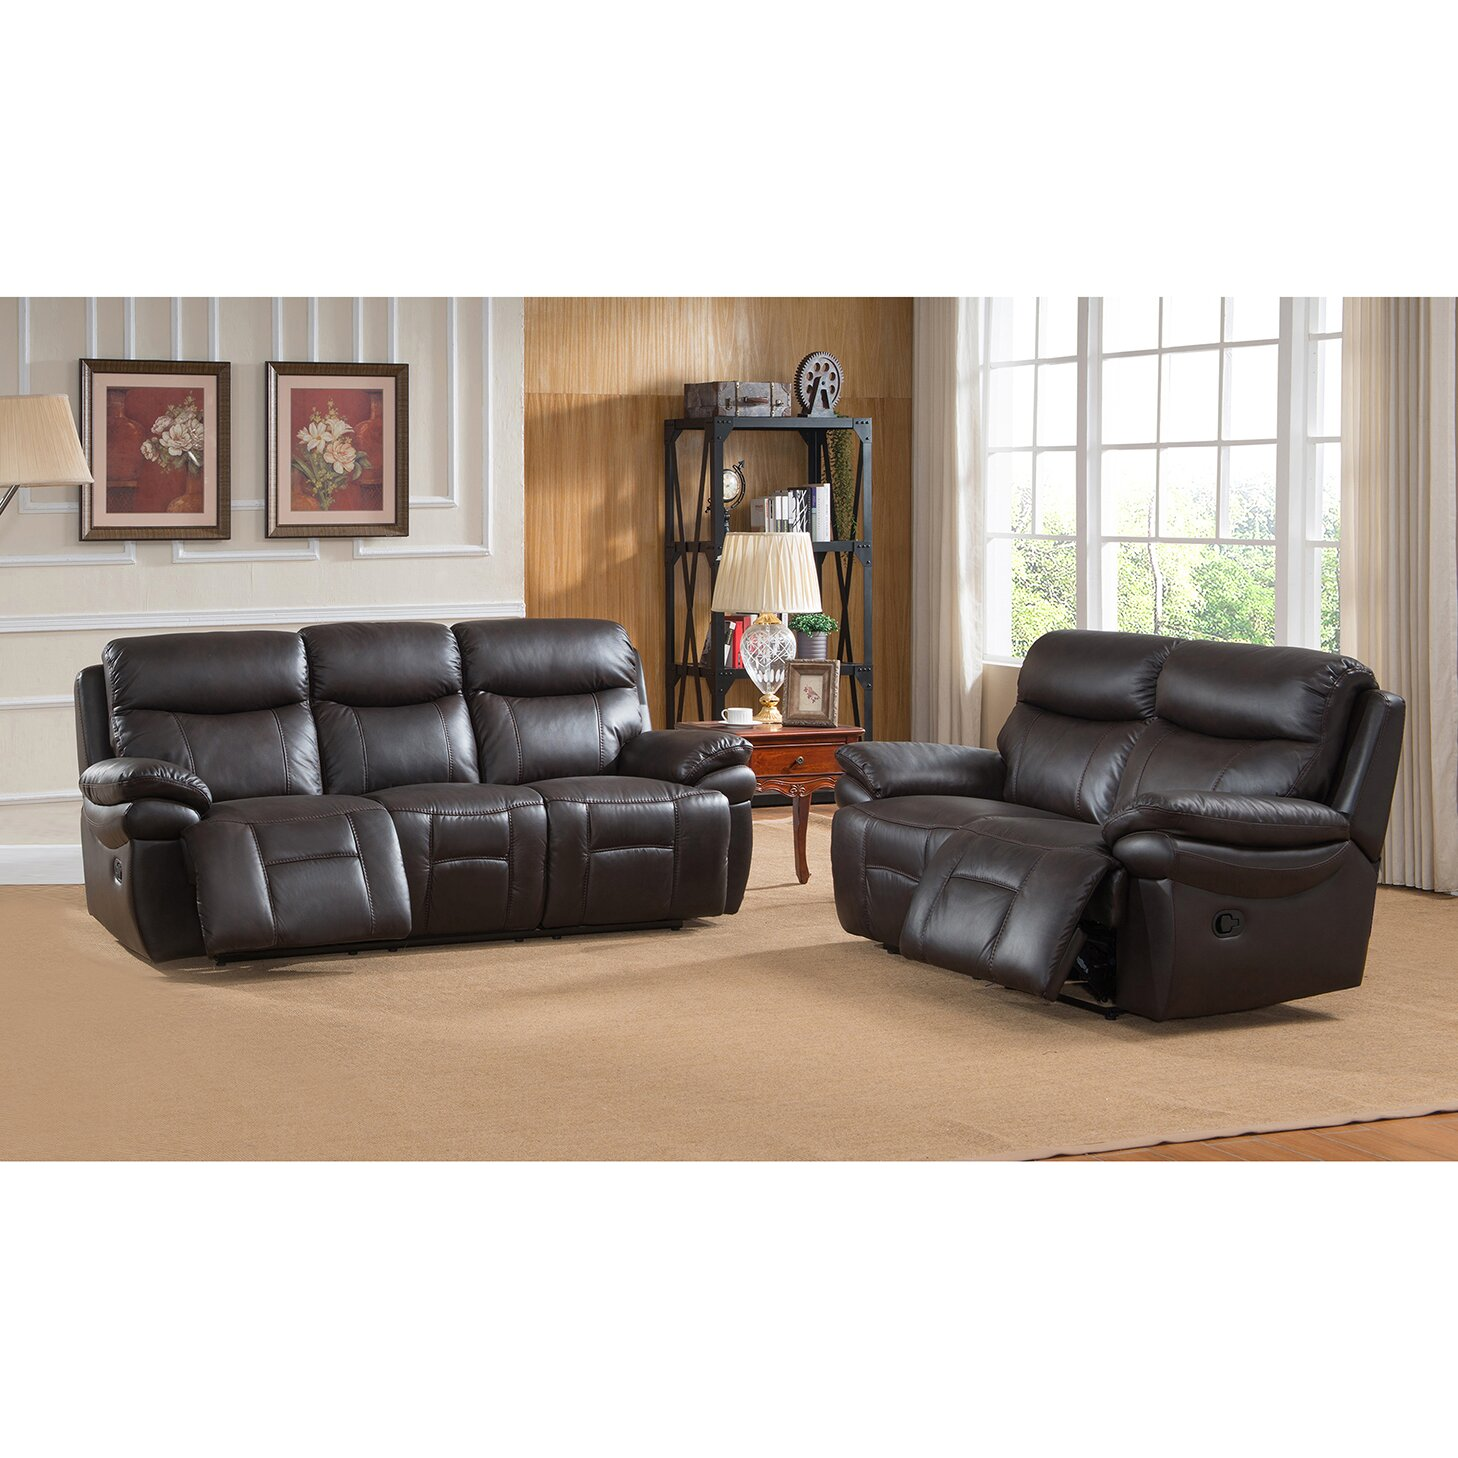 rushmore leather recliner sofa and loveseat set wayfair